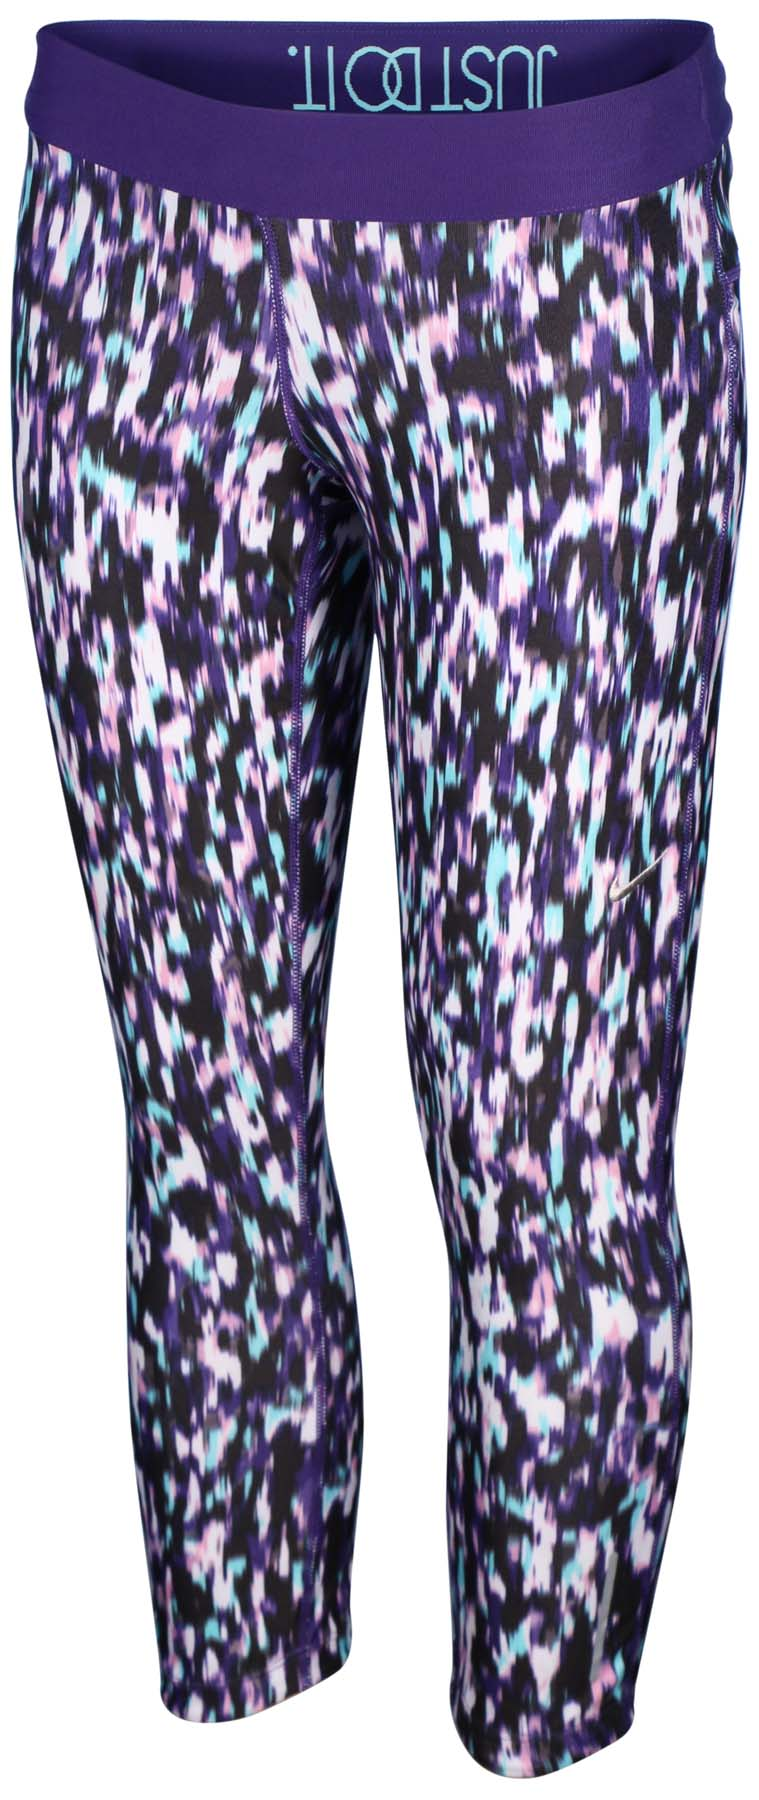 Nike Women's Dri-Fit Printed Relay Crop Running Tights-Violet Multi-XS by Nike